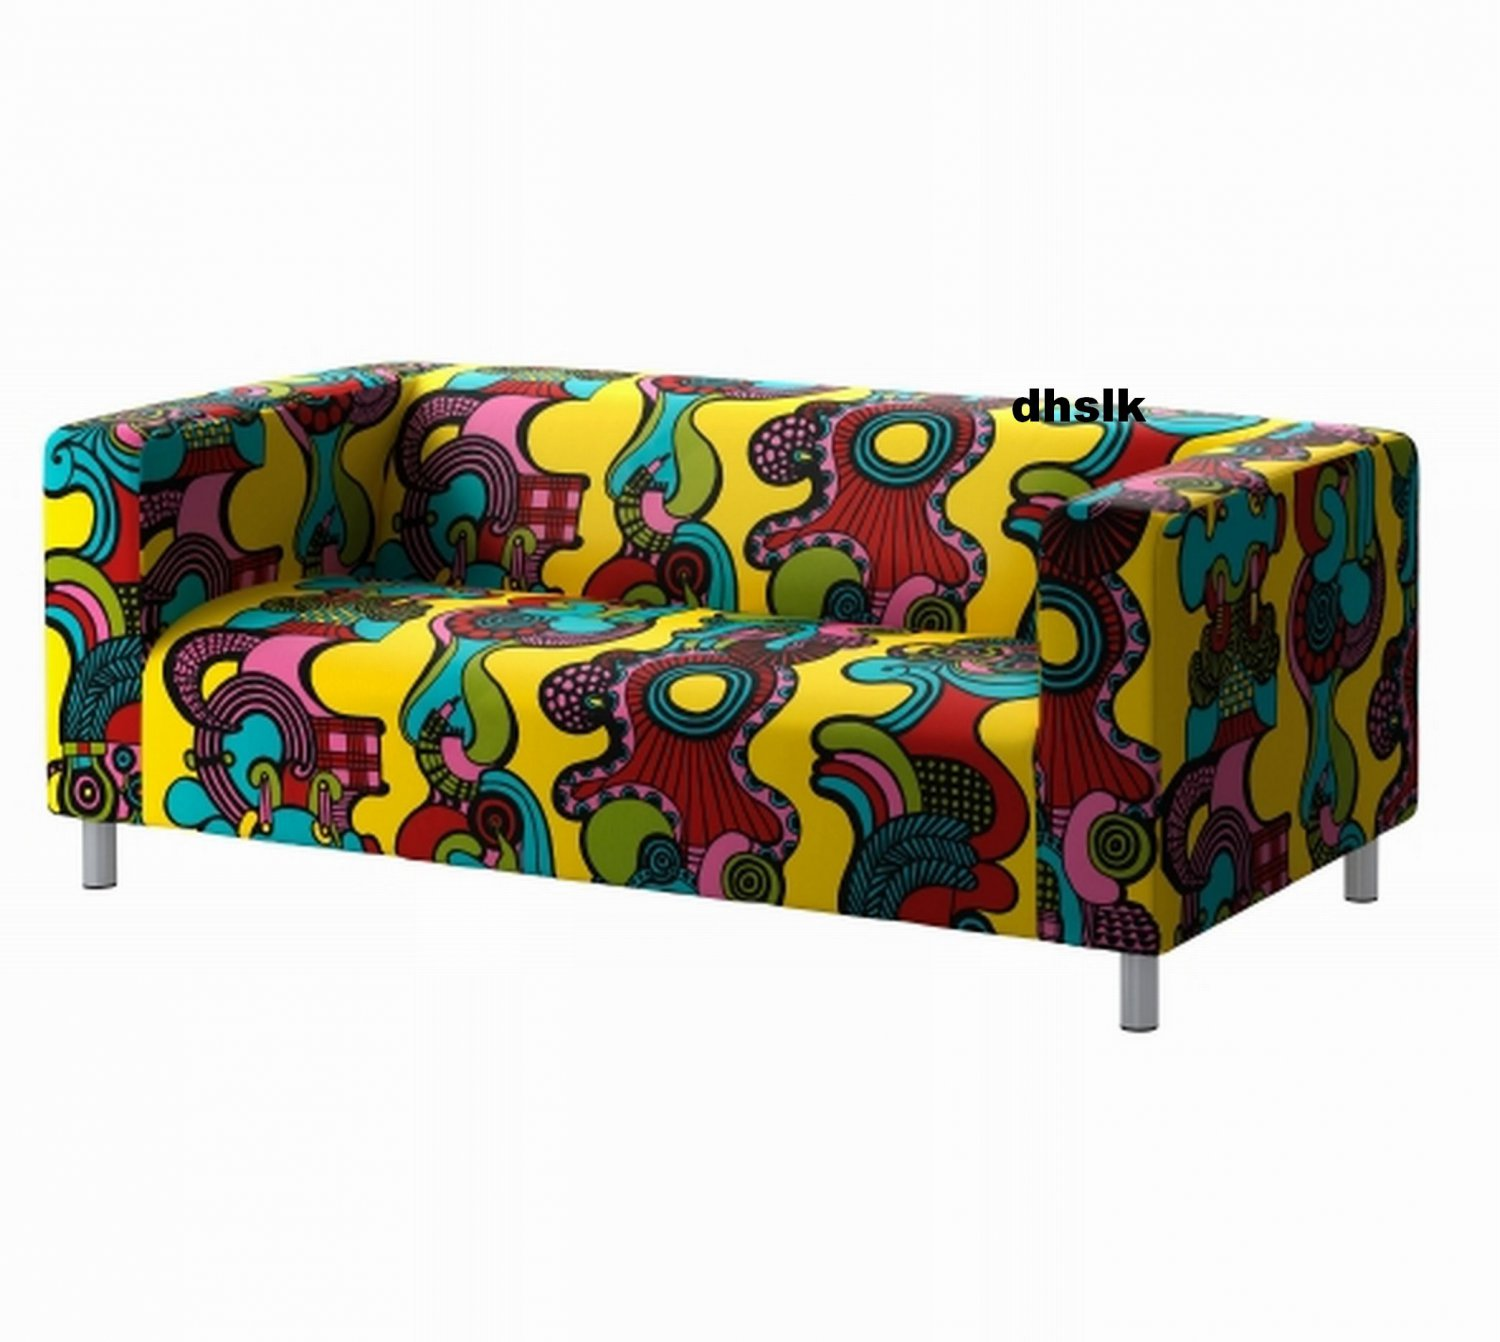 ikea klippan loveseat sofa slipcover cover mollaryd multicolor limited edition. Black Bedroom Furniture Sets. Home Design Ideas